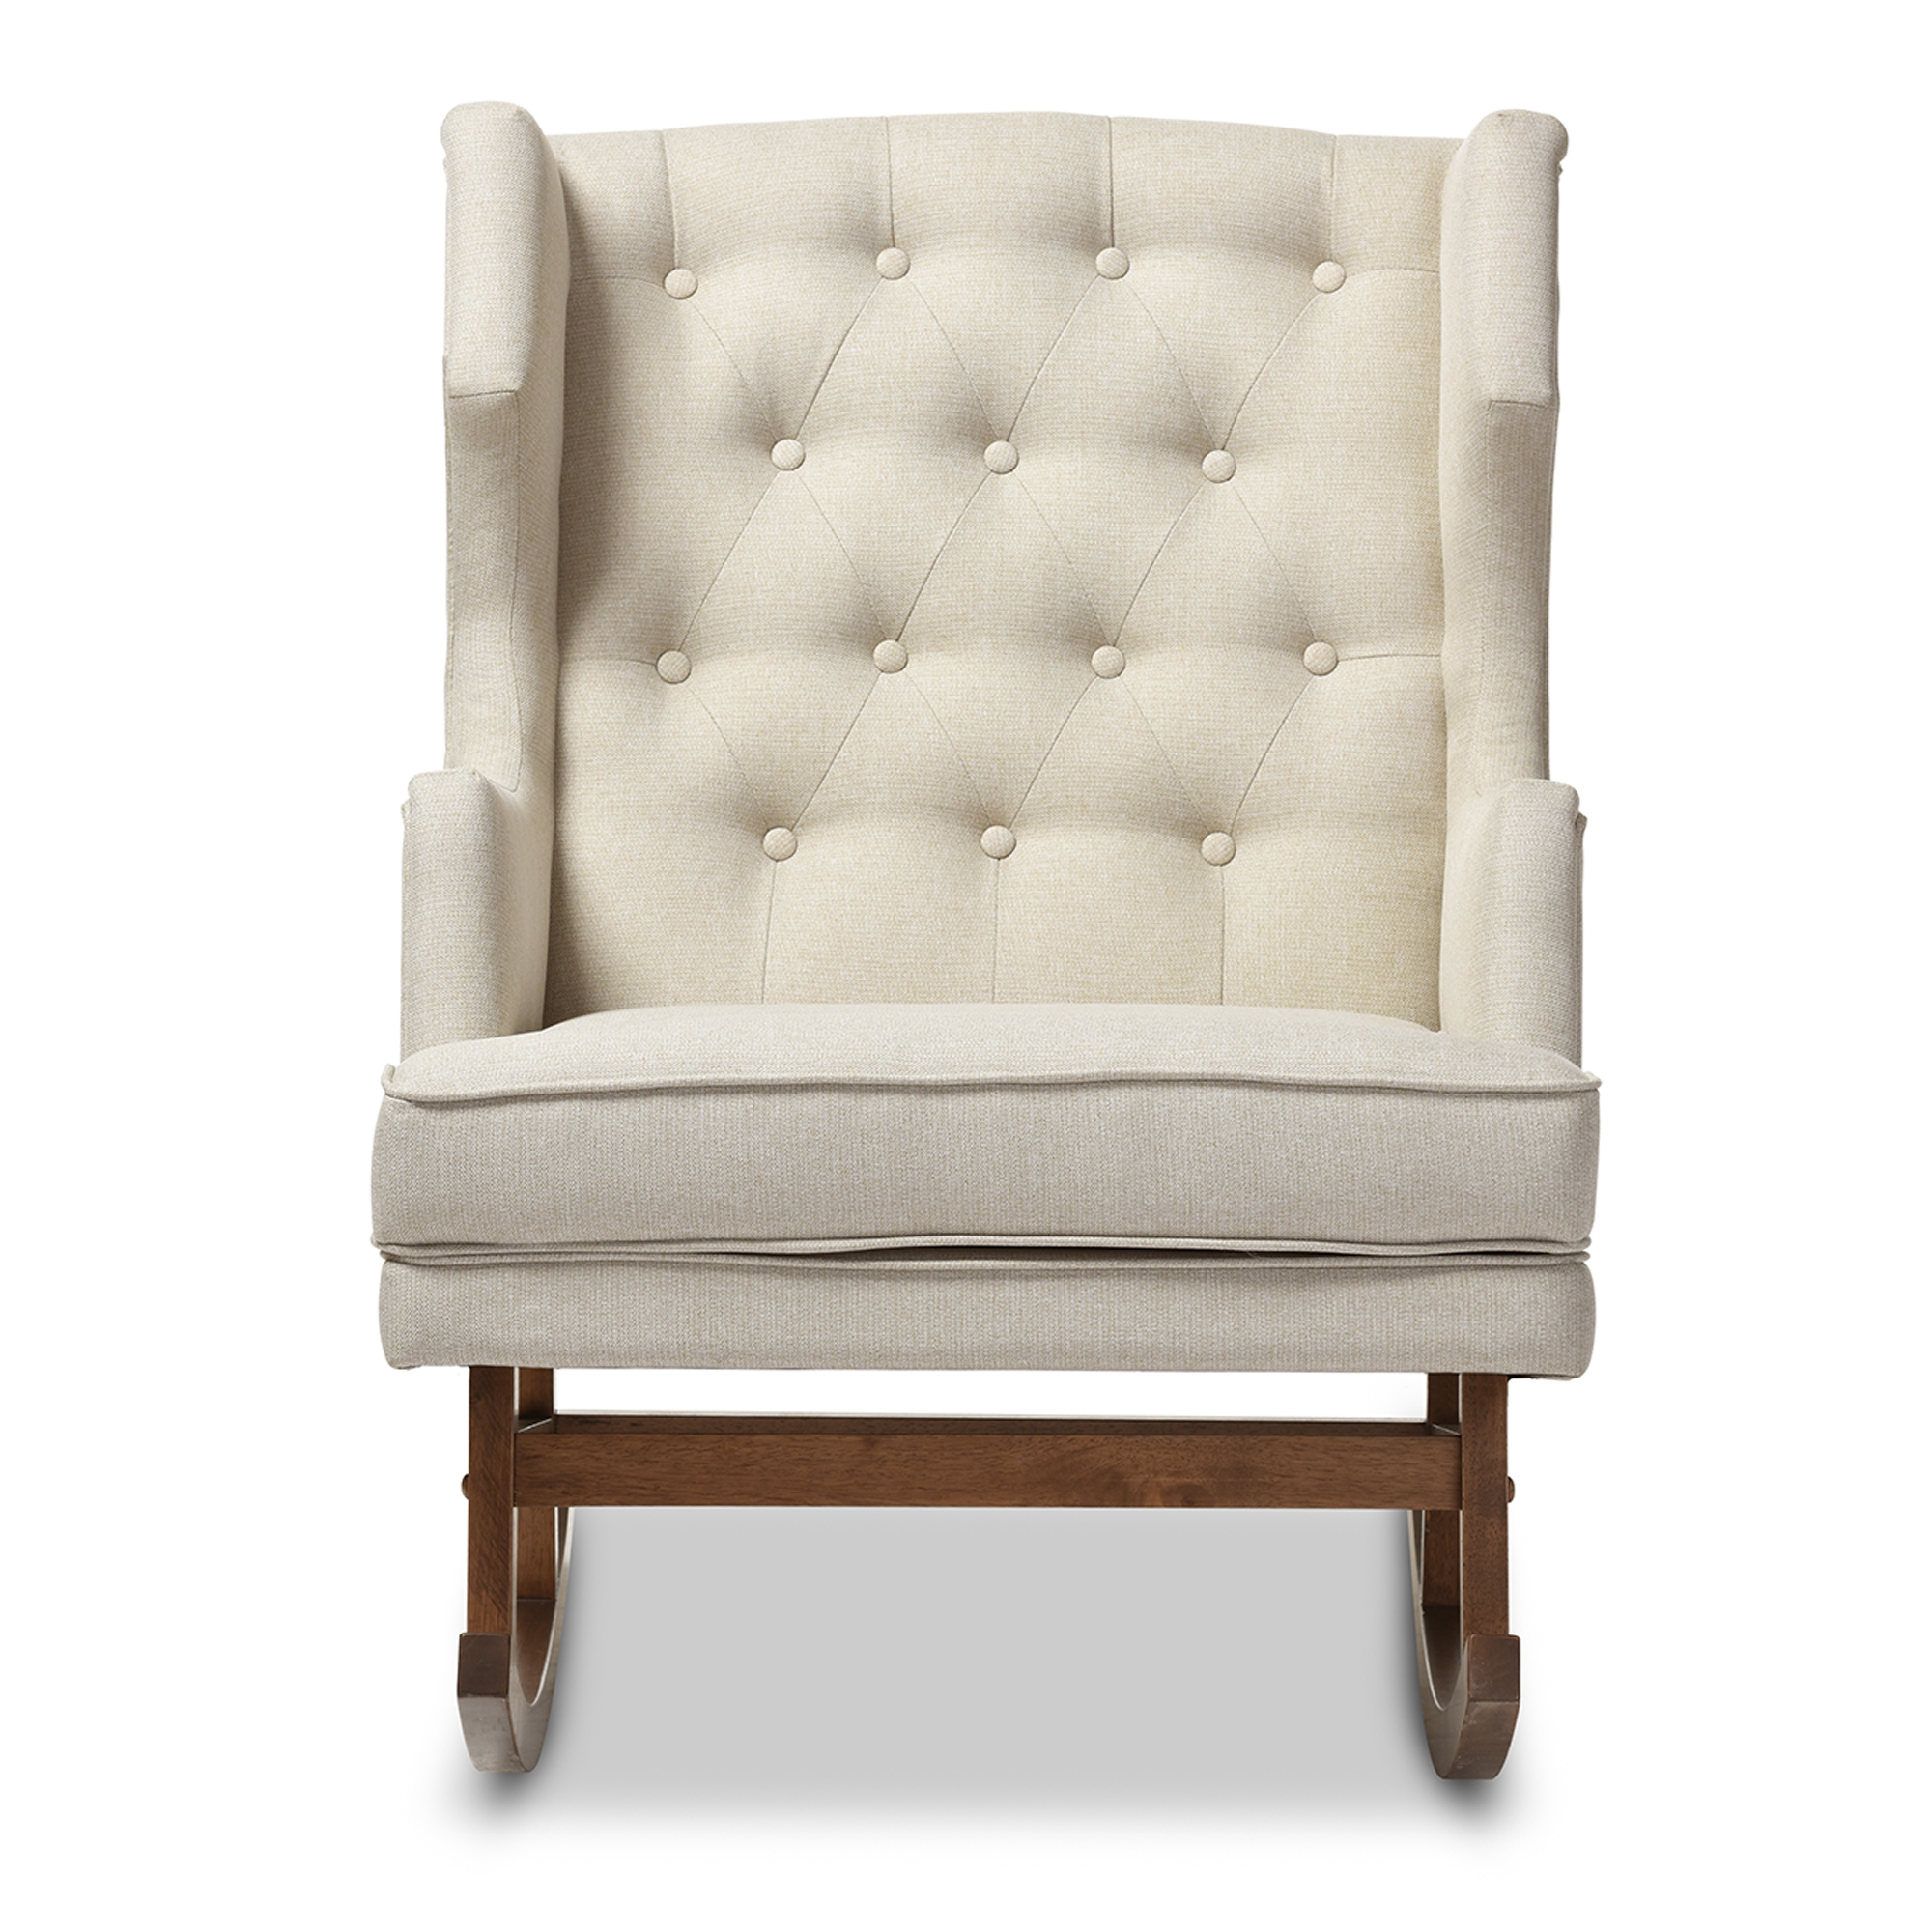 Baxton Studio Iona Mid Century Retro Modern Light Beige Fabric Upholstered  Button Tufted Wingback Rocking Chair